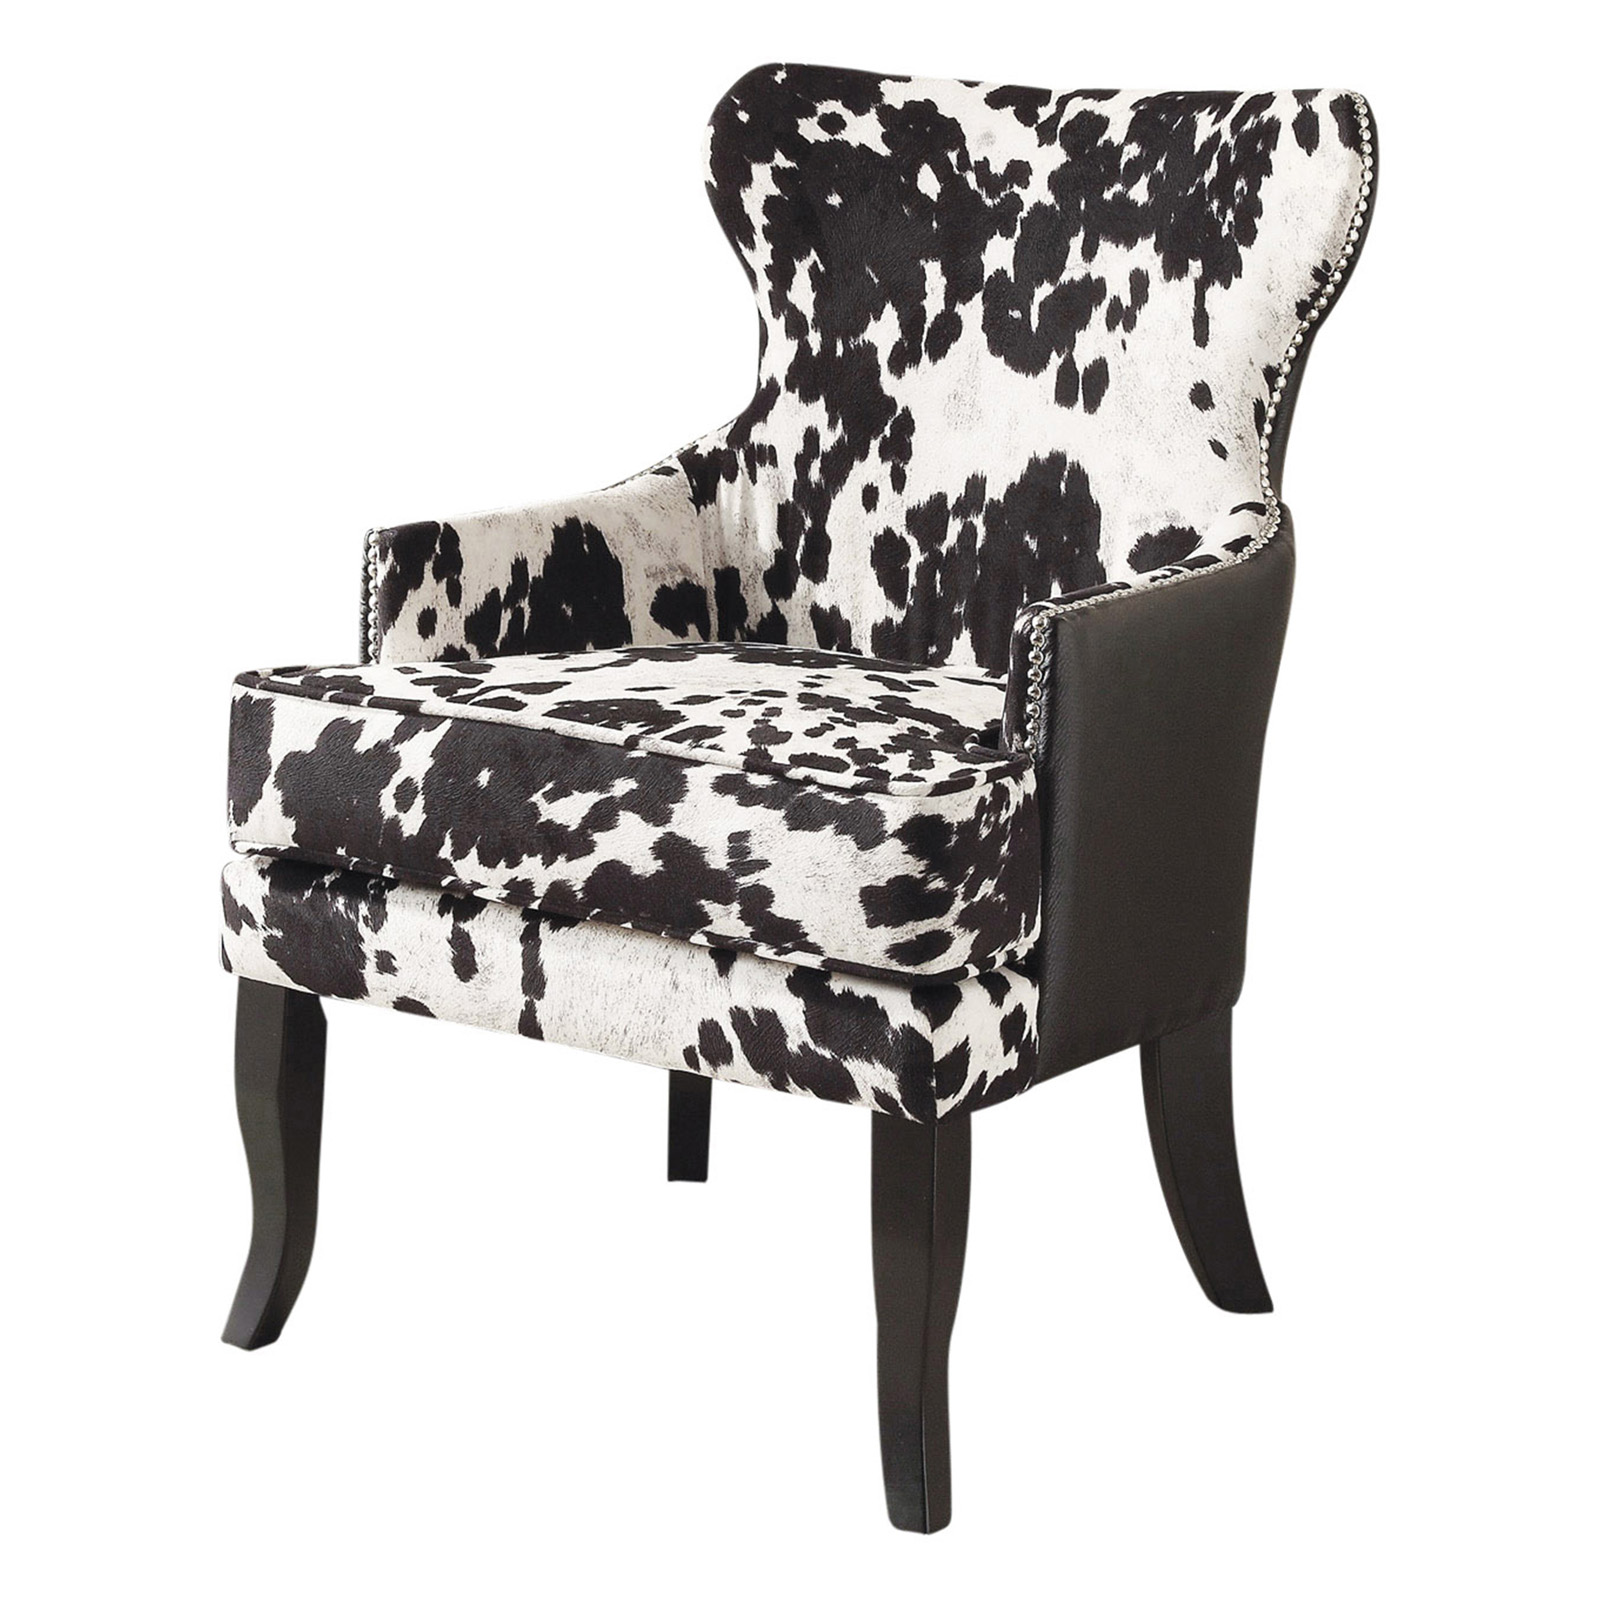 !nspire Faux Cow Hide Accent Chair With Stud Detail